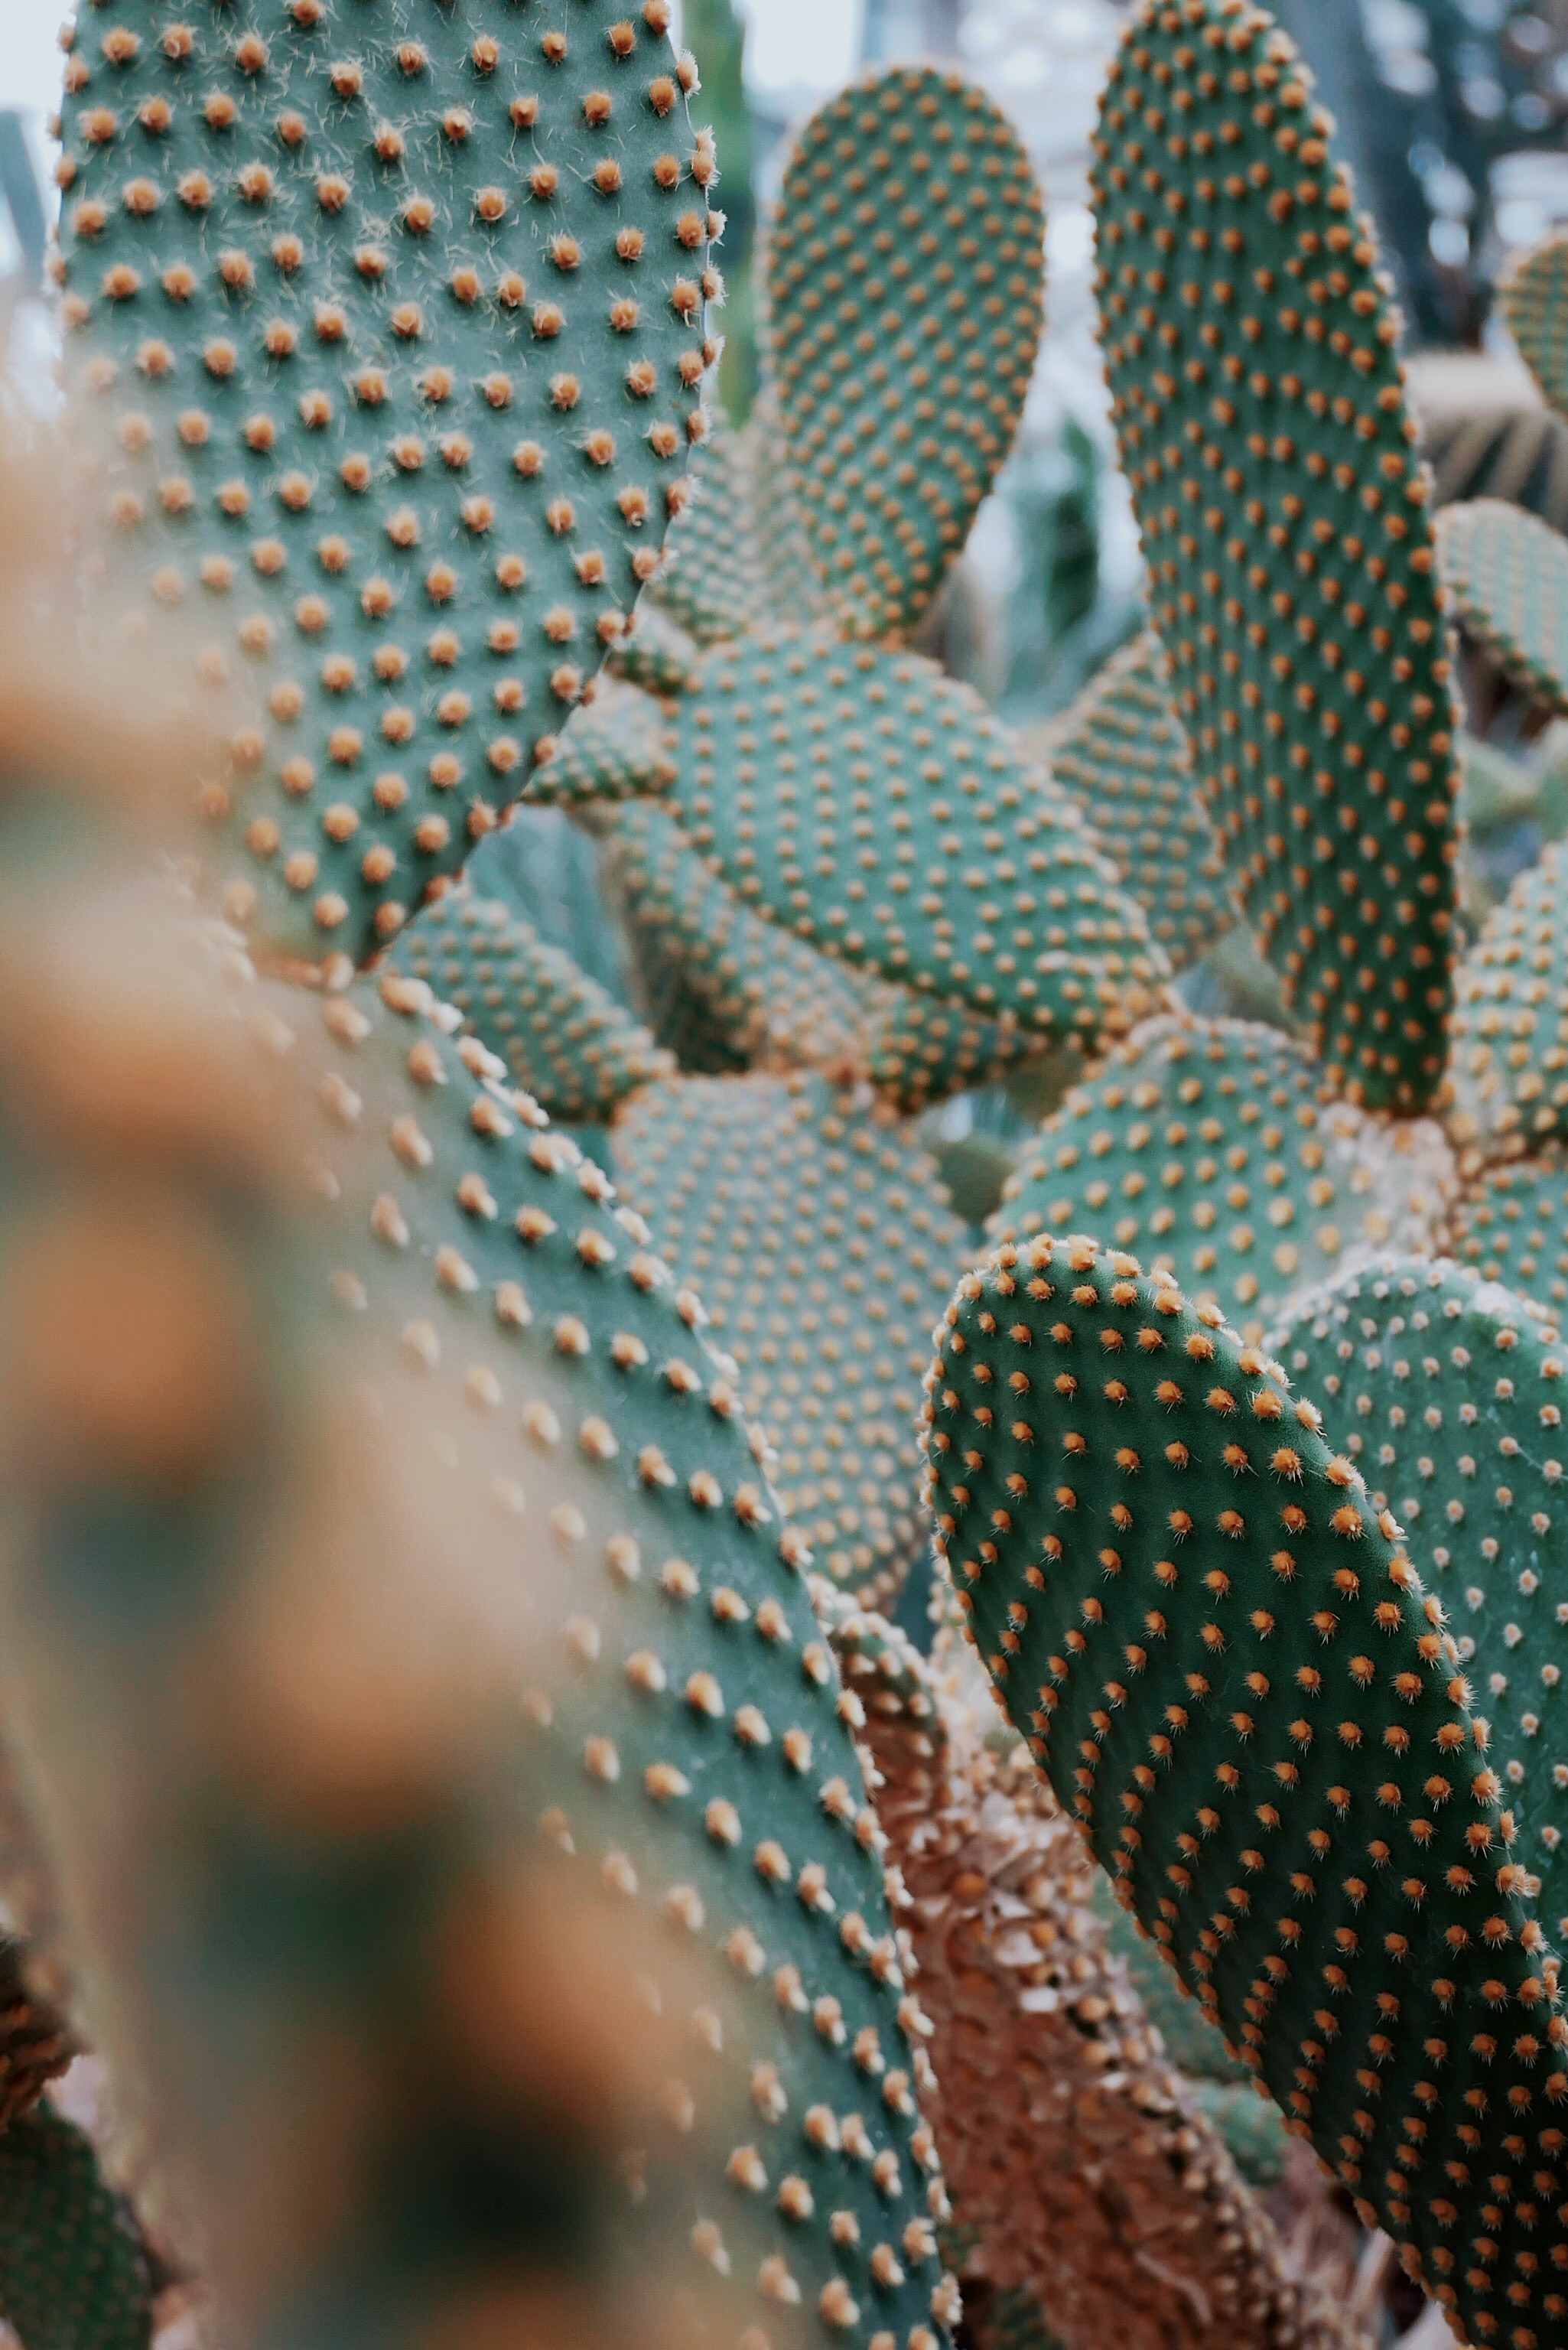 close up photo of green cactus during daytime